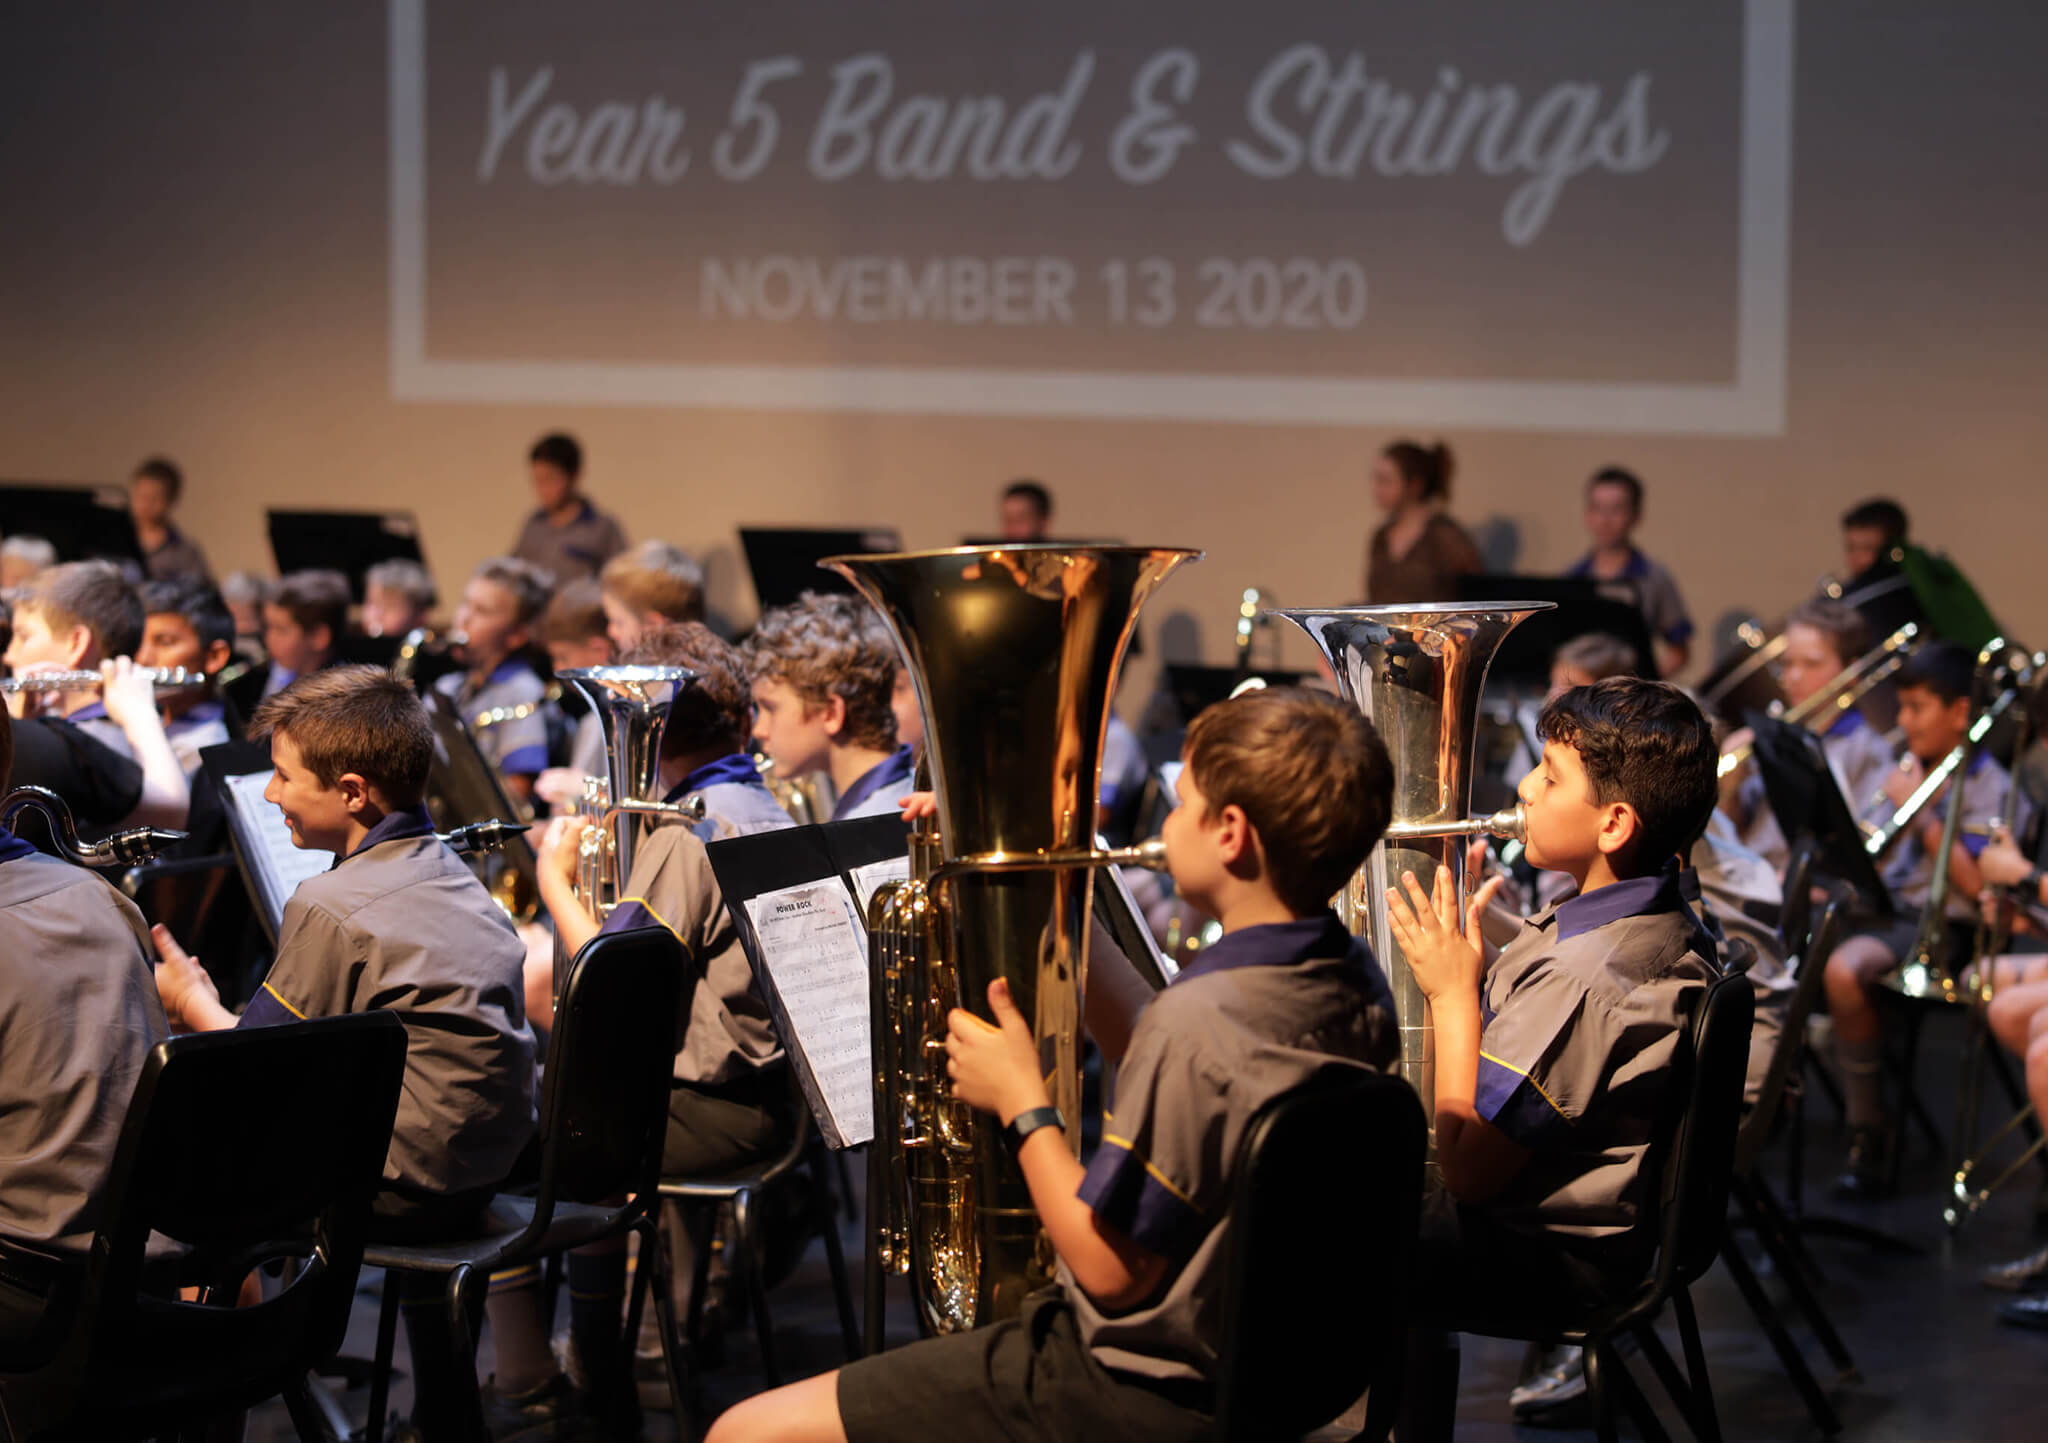 Year 5 Band and Strings Concert    Thursday, 17th June 2021